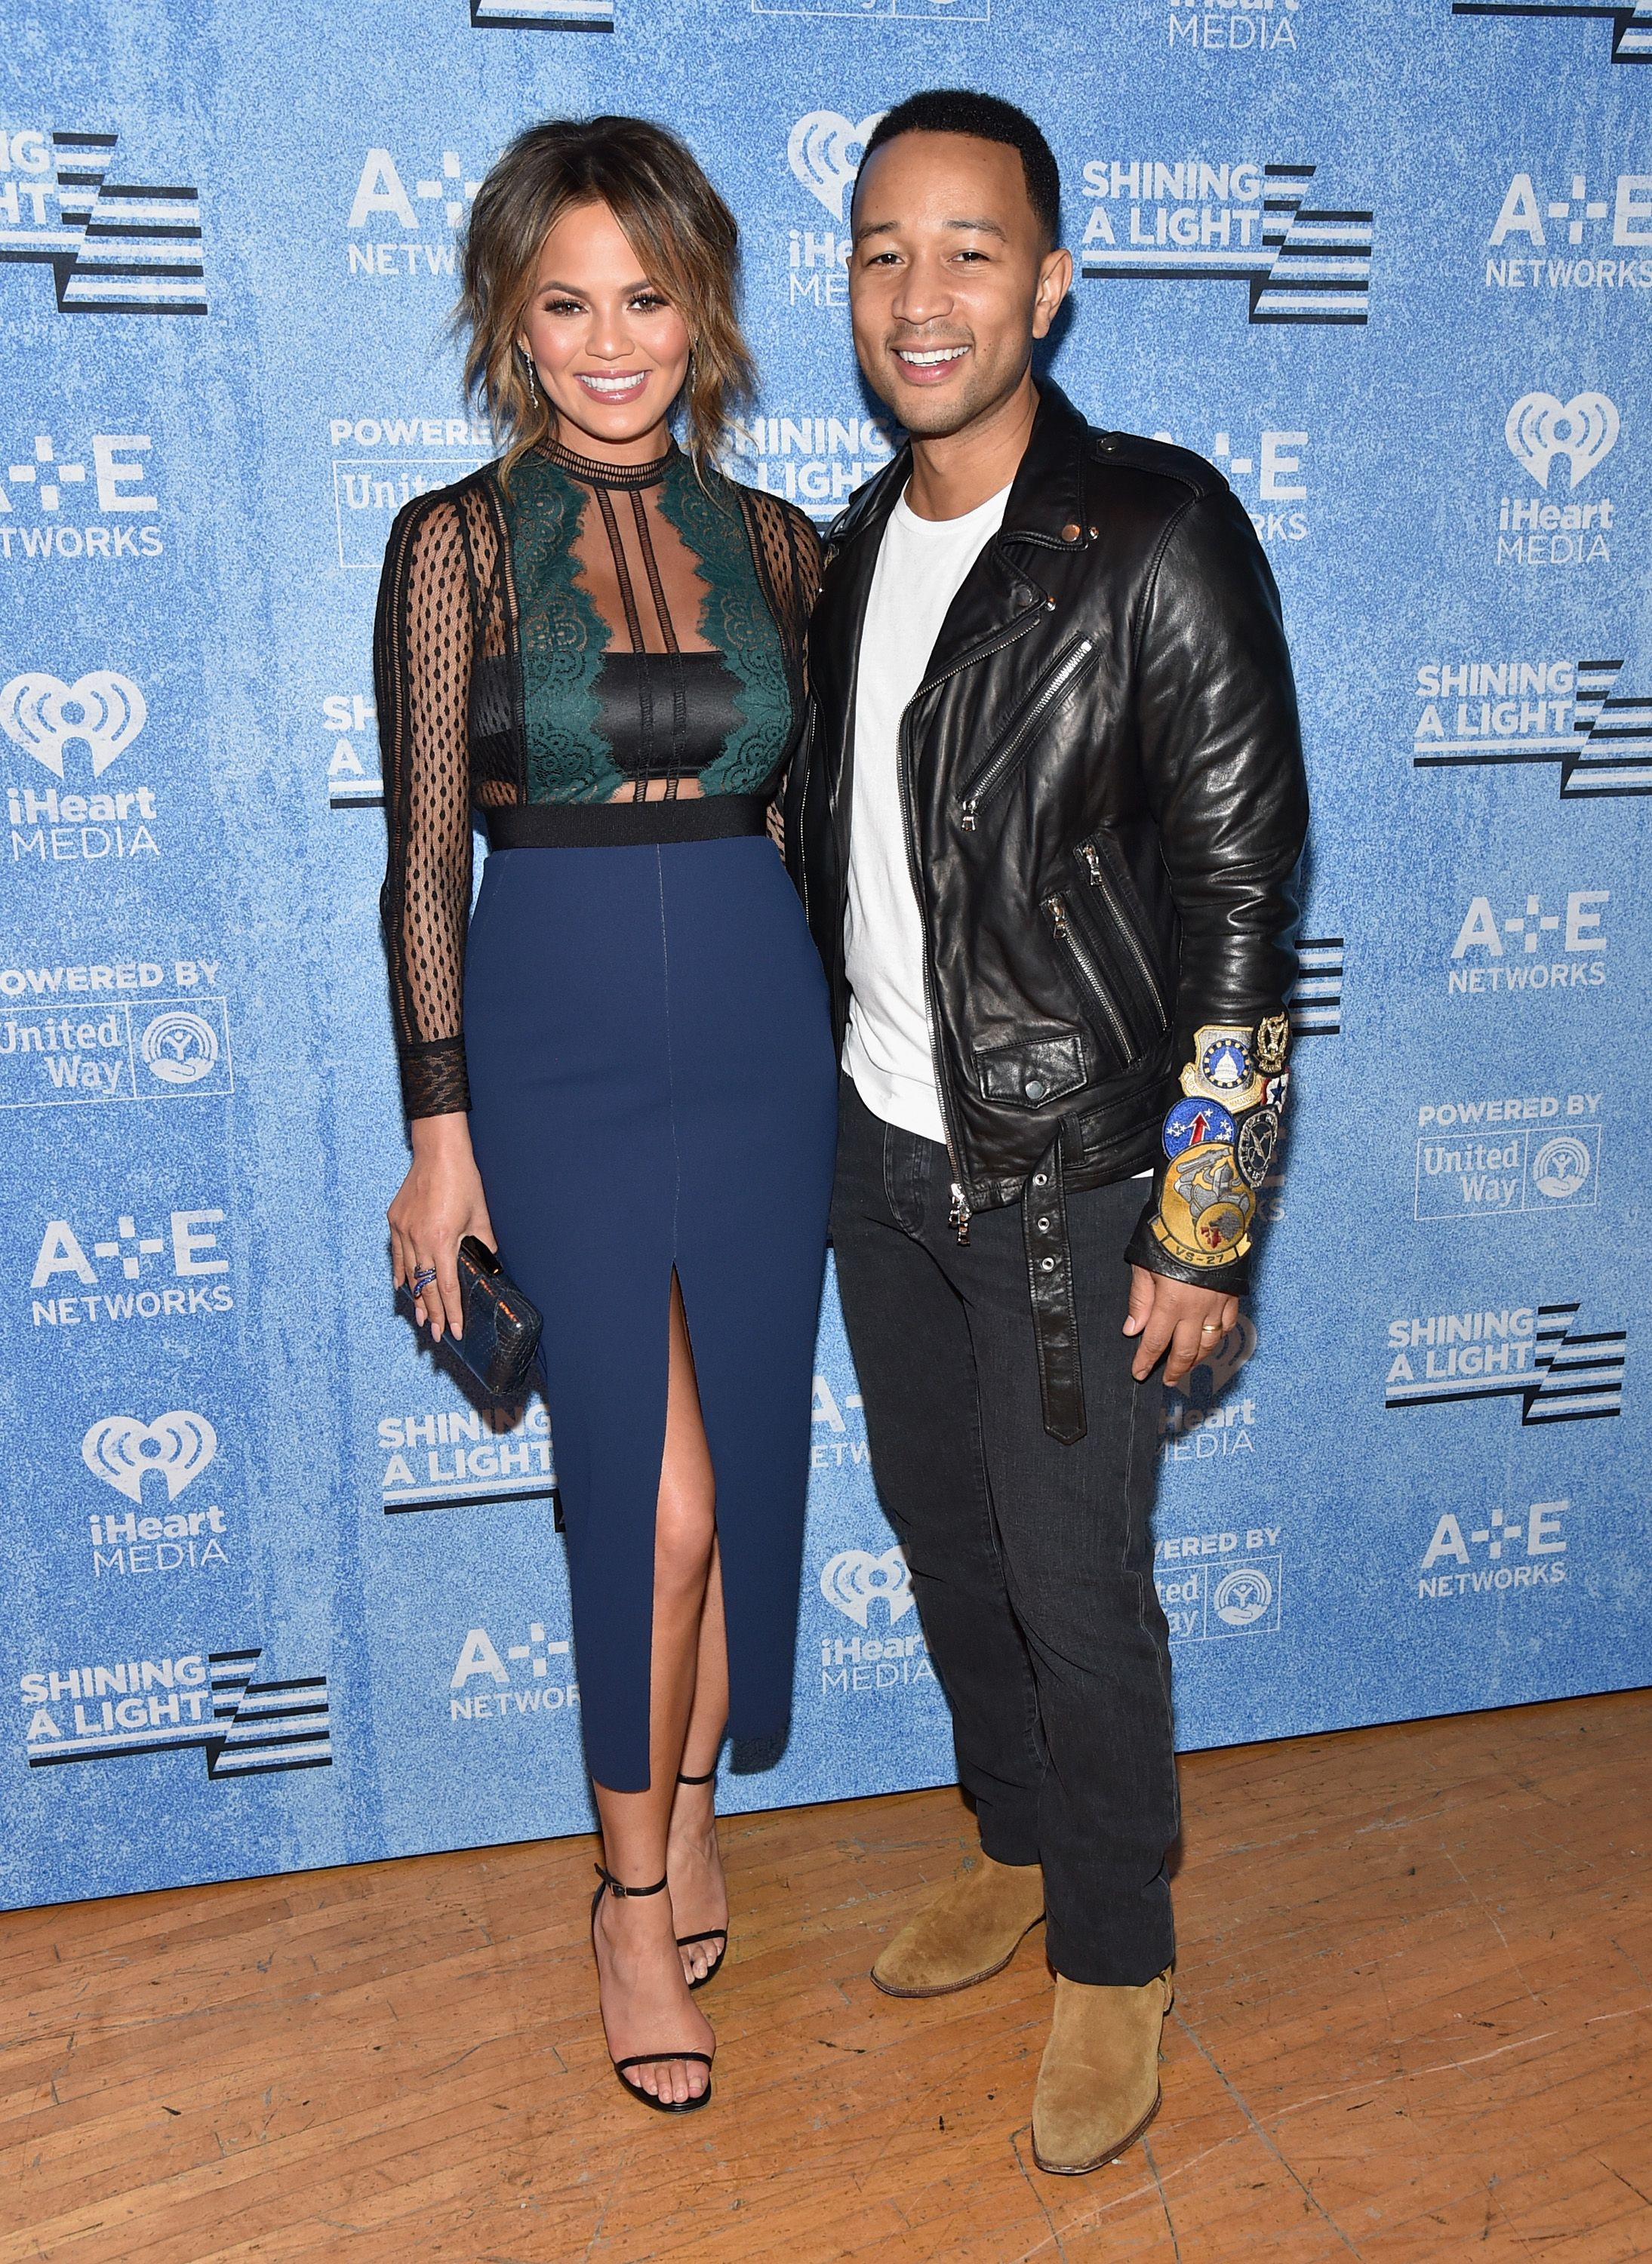 """Chrissy Teigen and John Legend during A+E Networks' """"Shining A Light"""" concert on November 18, 2015, in Los Angeles, California. 